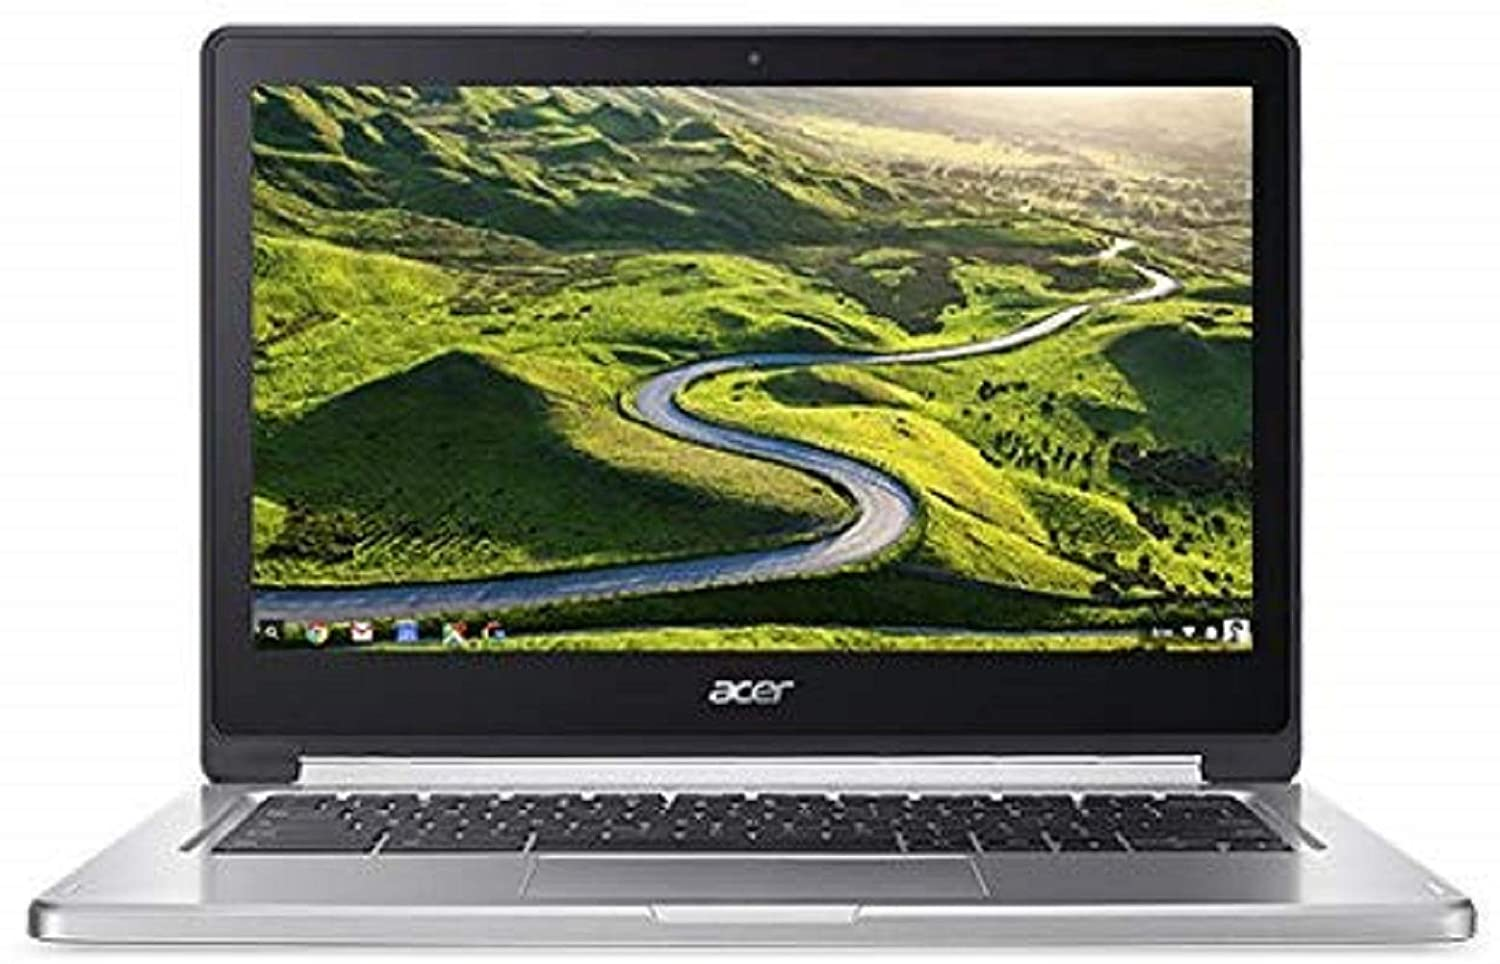 Acer - Chromebook r 13 cb5-312t-k227 - diseño abatible - mt8173 2.1 ghz - chrome os - 4 gb ram - 32 gb emmc - 13.3 ips pantalla táctil 1920 x 1080 (full hd) - powervr gx6250 - wi-fi, bluetooth - plata